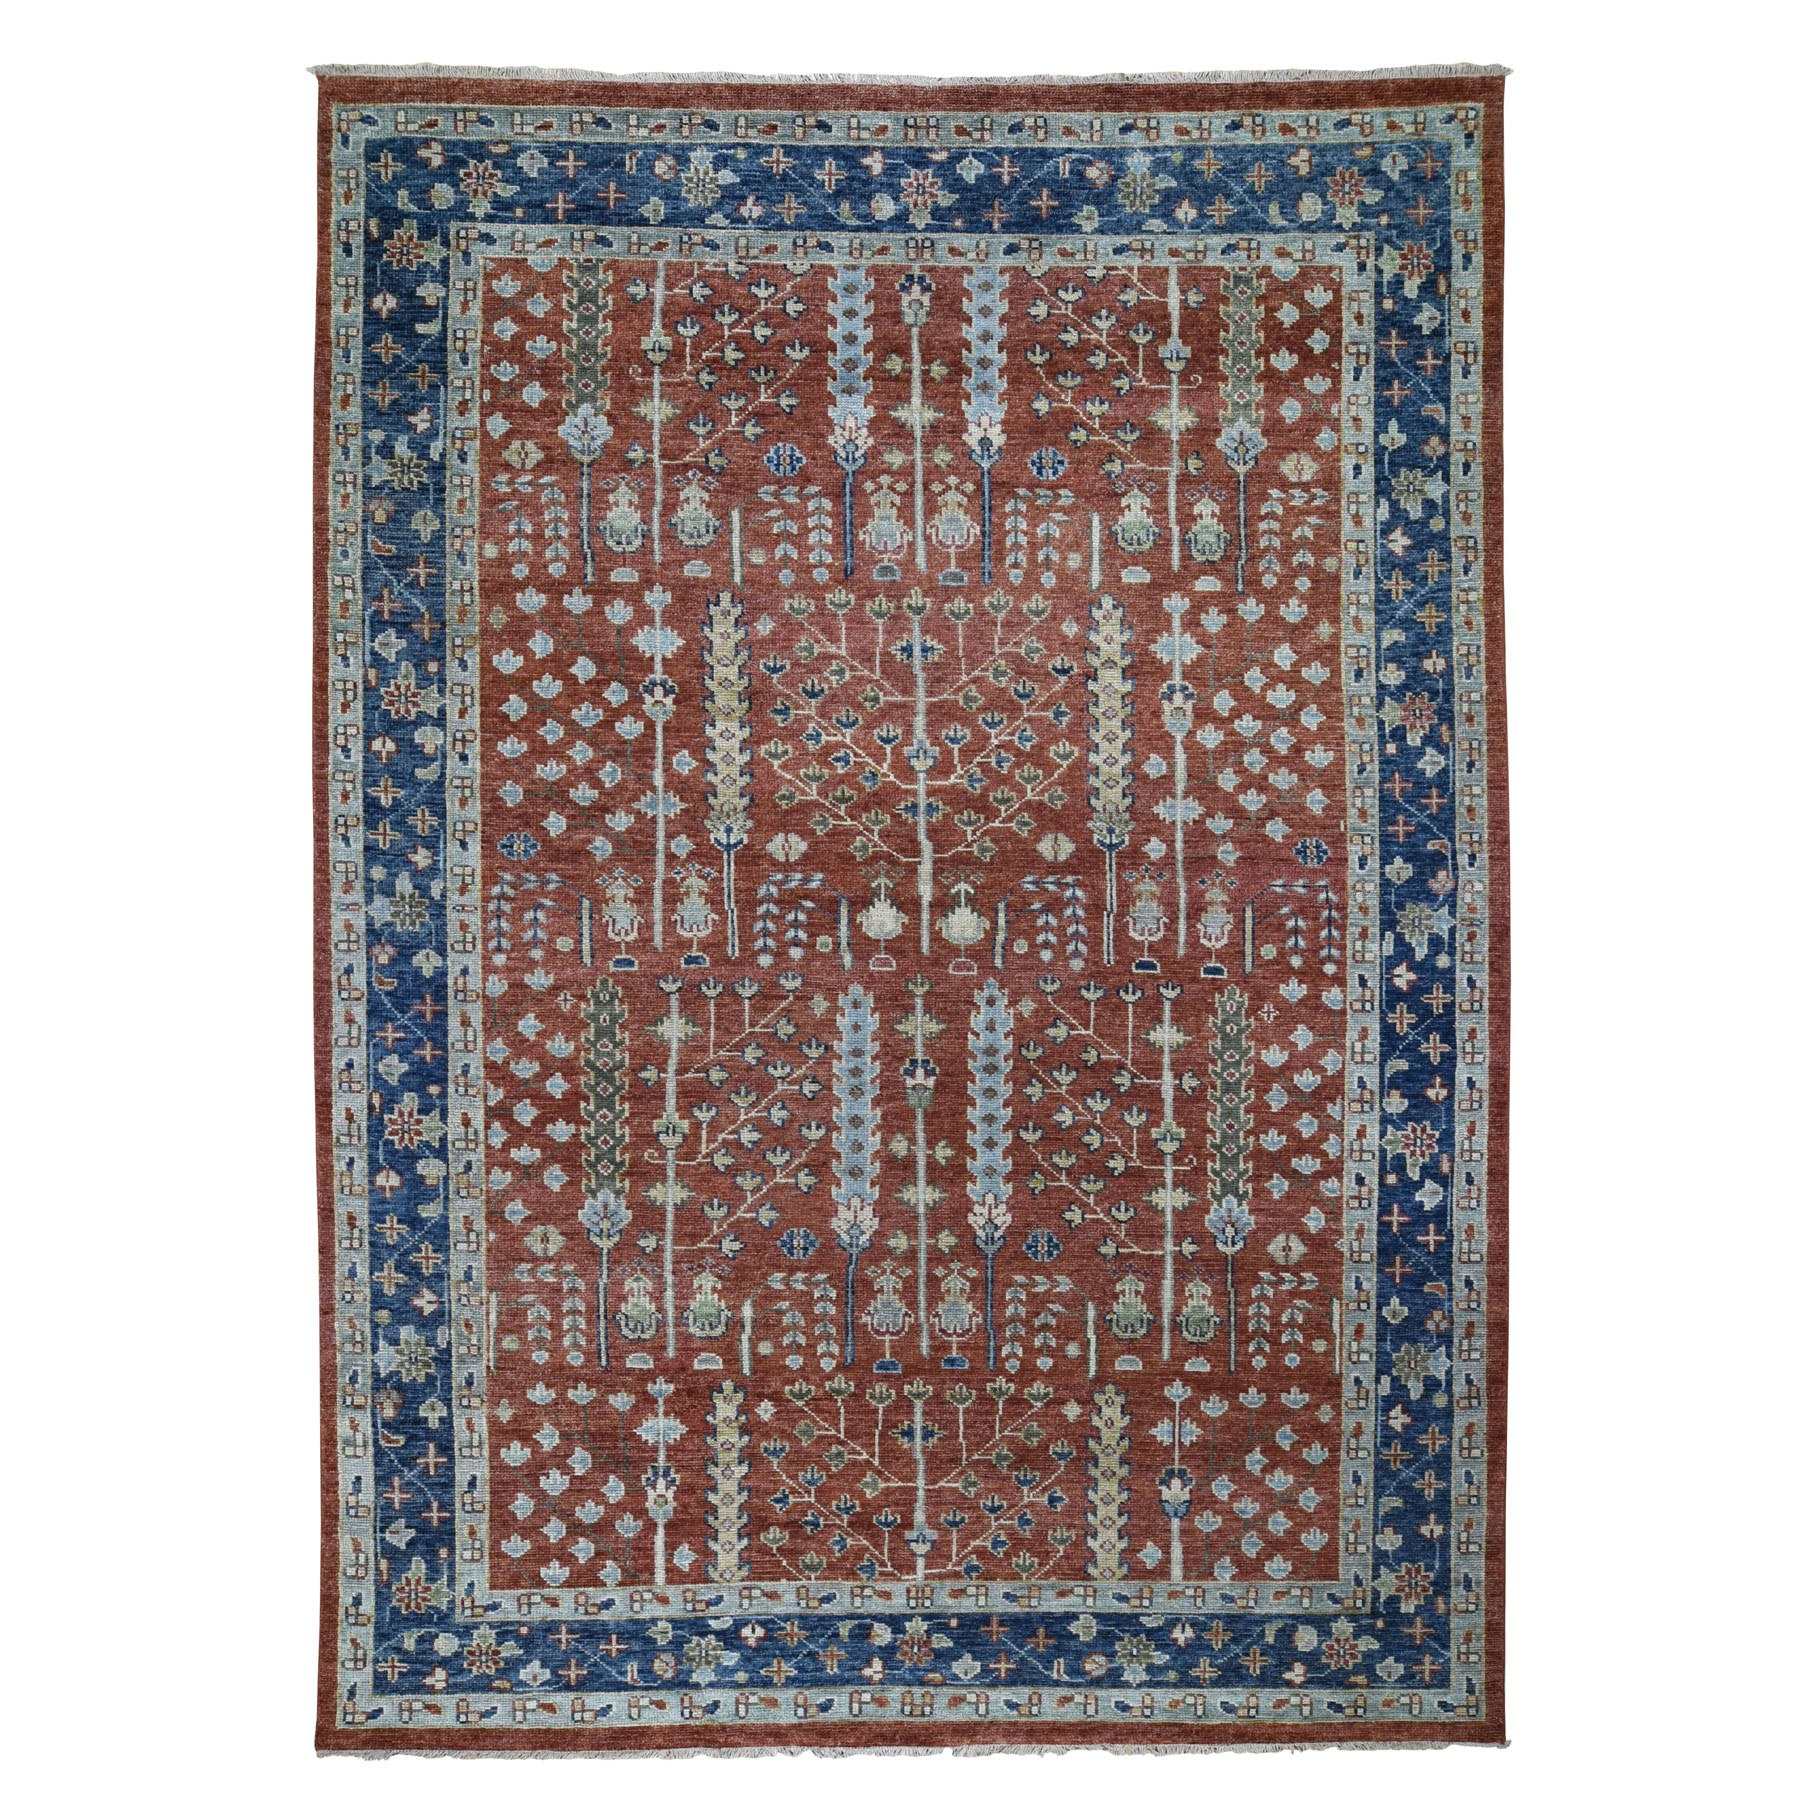 Nomadic And Village Collection Hand Knotted Red Rug No: 0196484